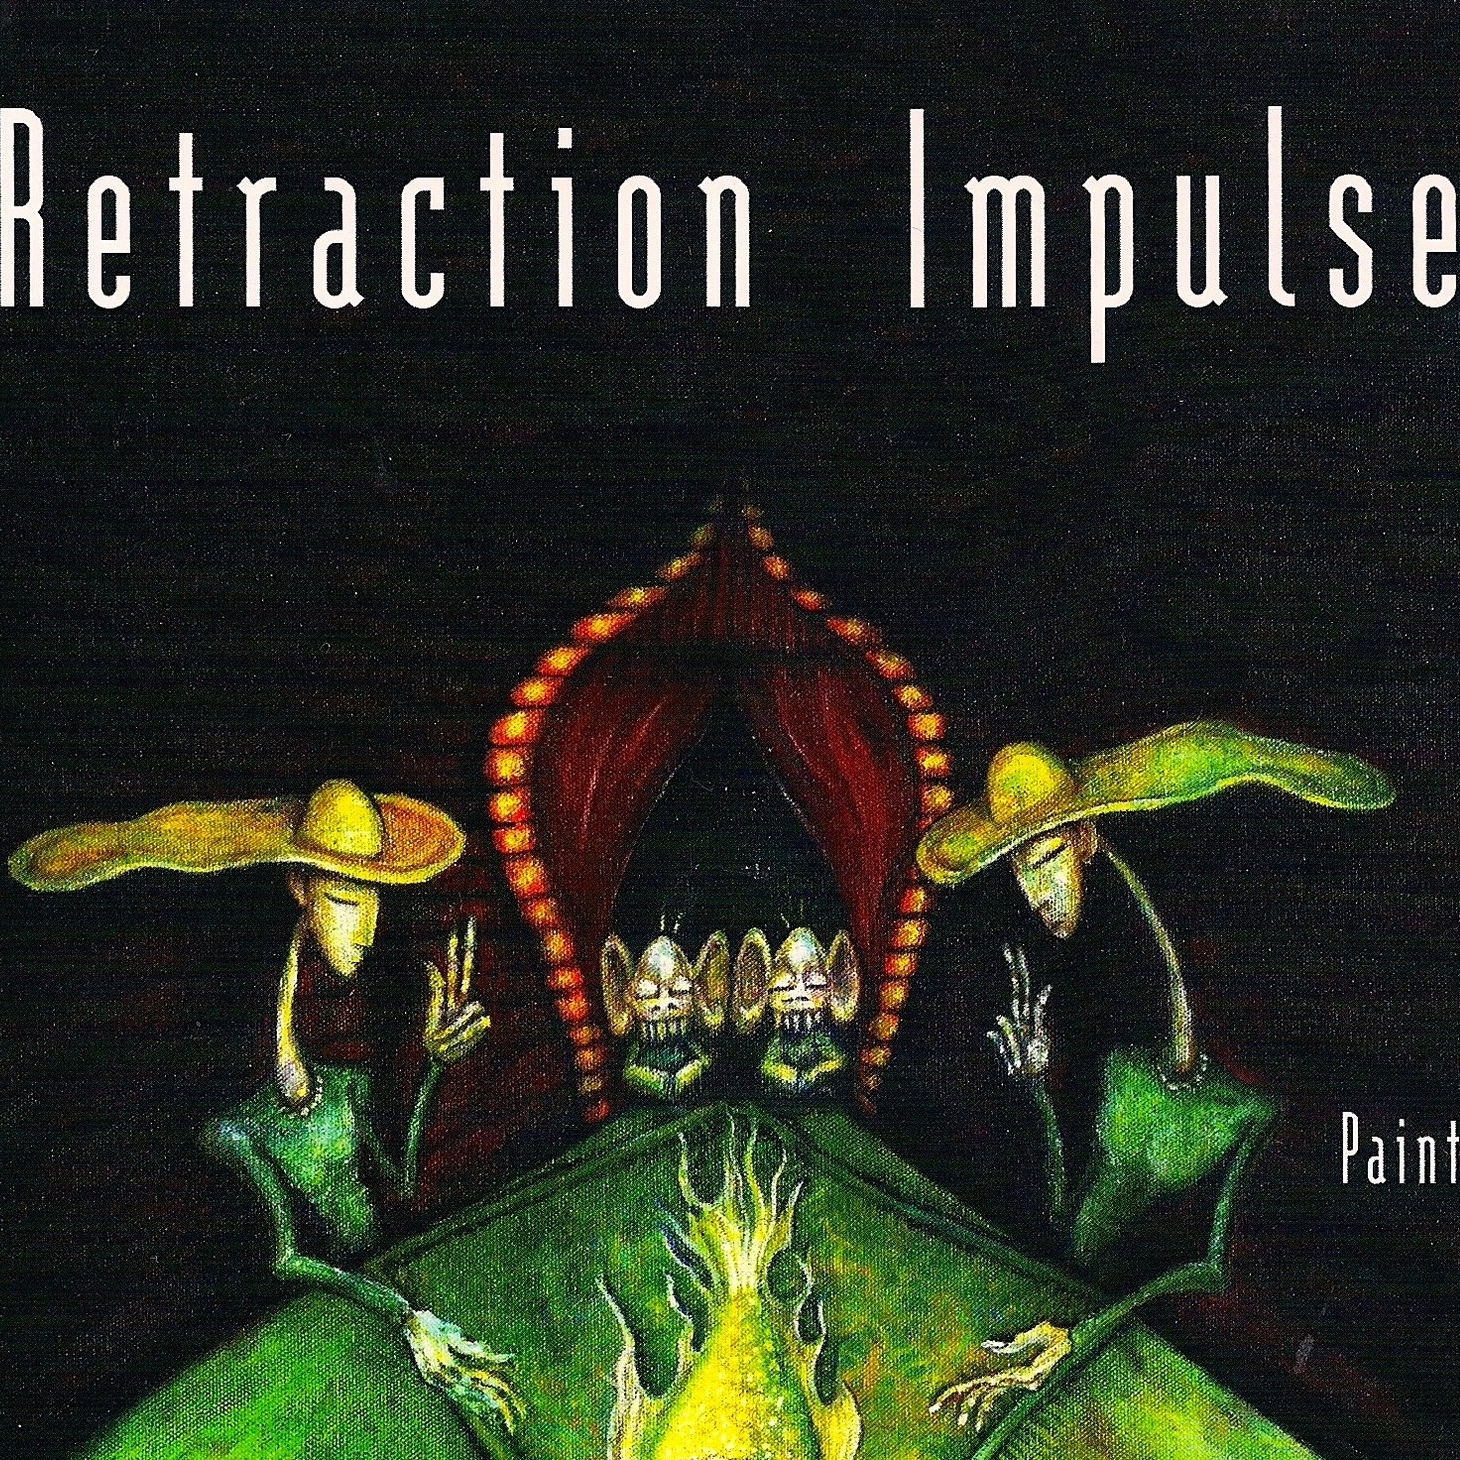 RETRACTION IMPULSE